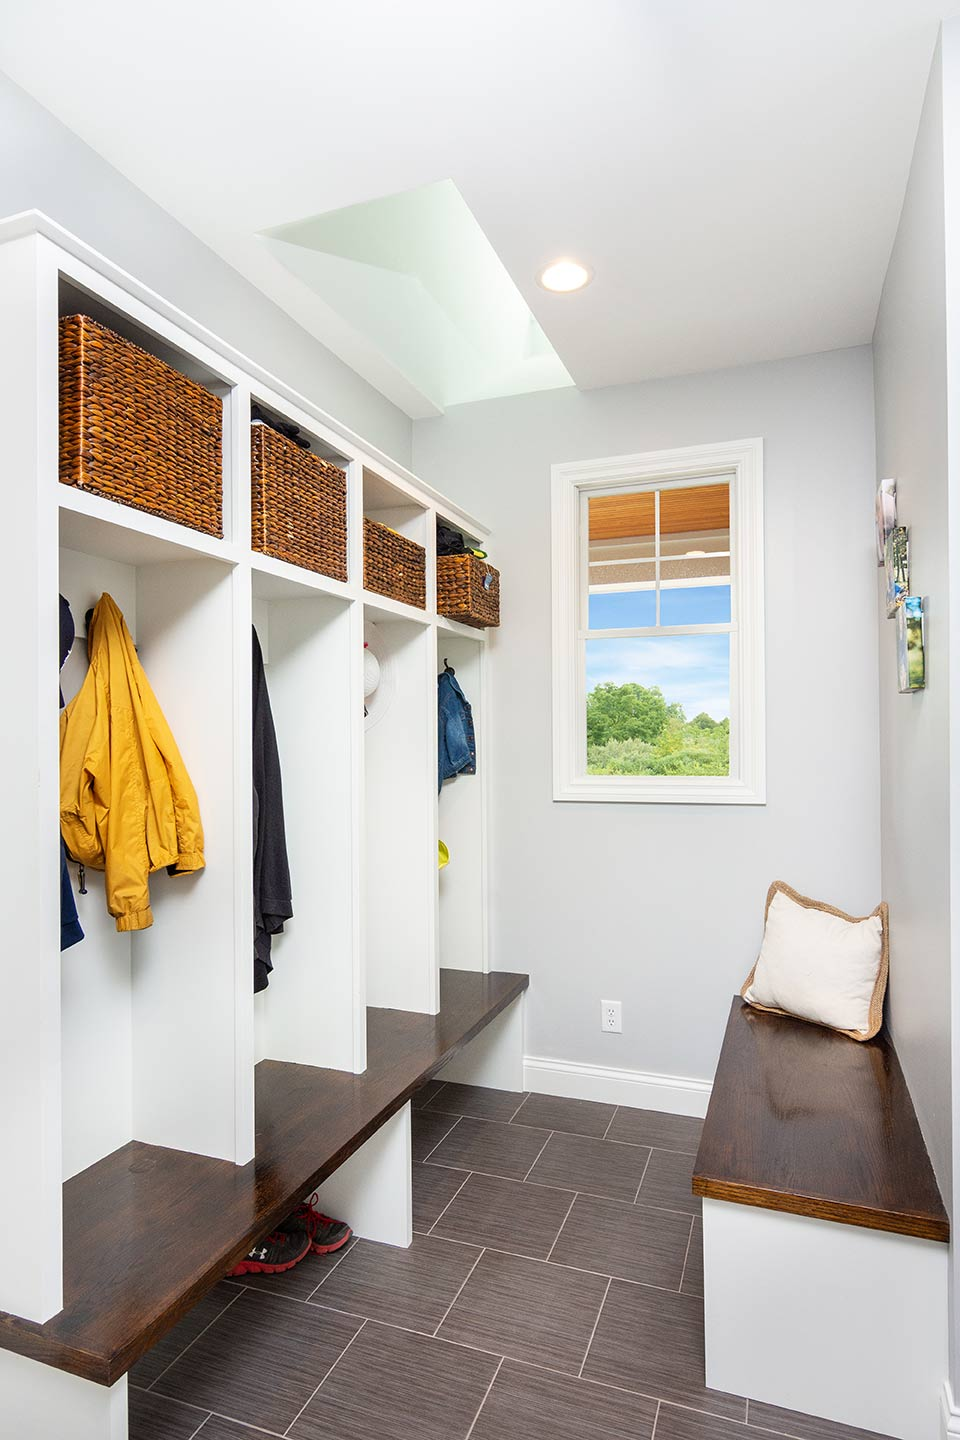 photo of mudroom with custom built-in storage shelving and a row of cubbies opposite a long bench with window and skylight